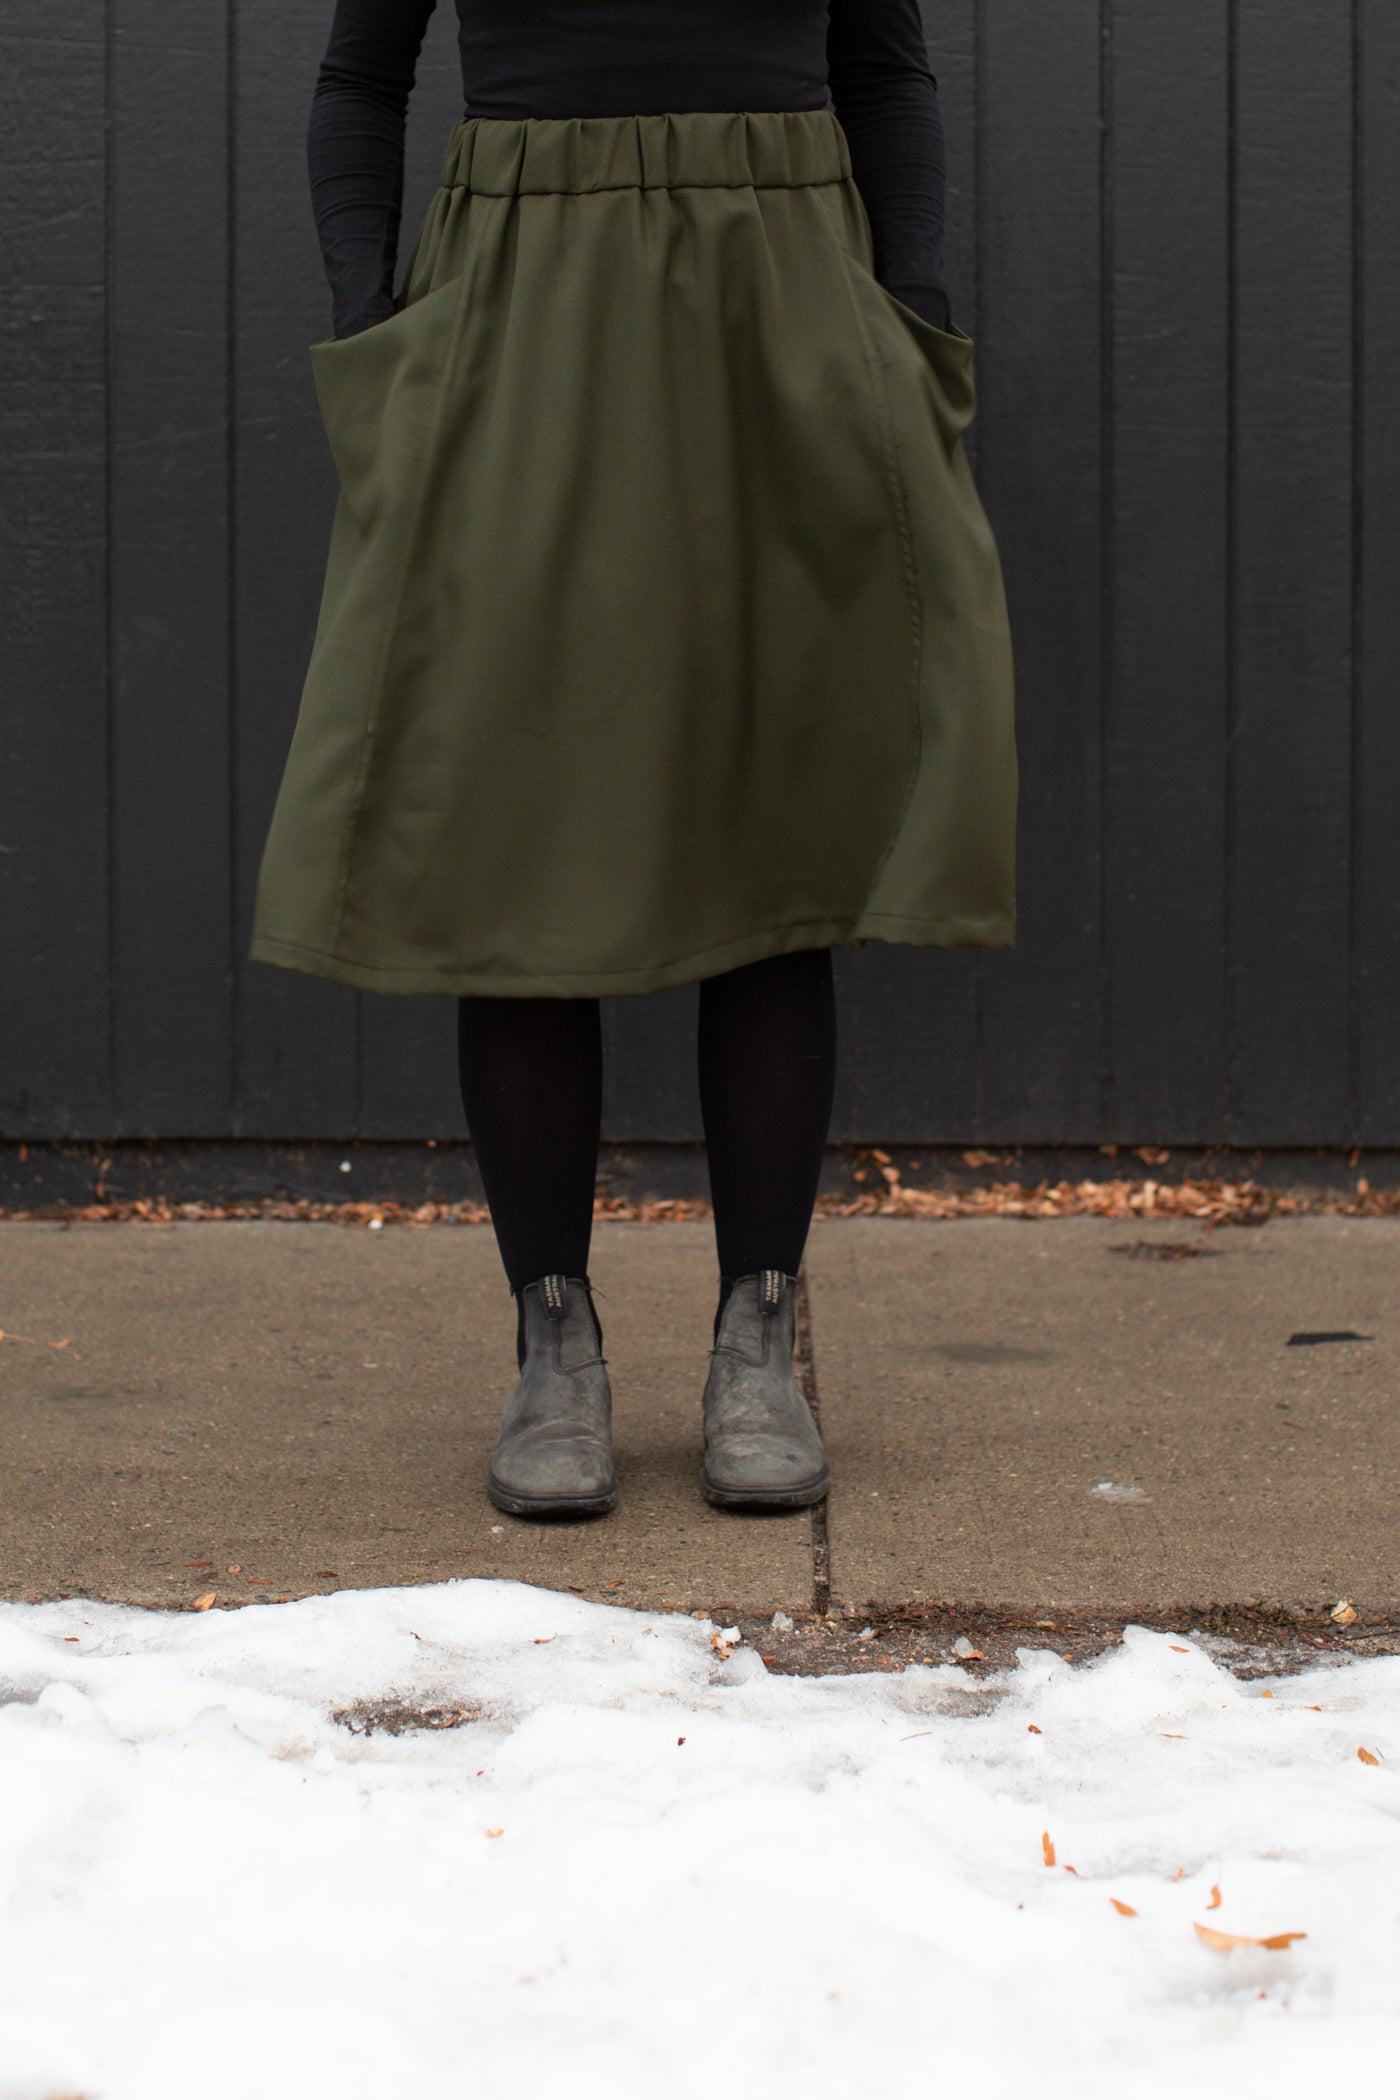 Mid waist to feet image of Jaime standing against a black wall, wearing an olive green skirt, black leggings and shoes with her hands in the pockets.  Jaime is standing on a sidewalk with snow in the foreground.